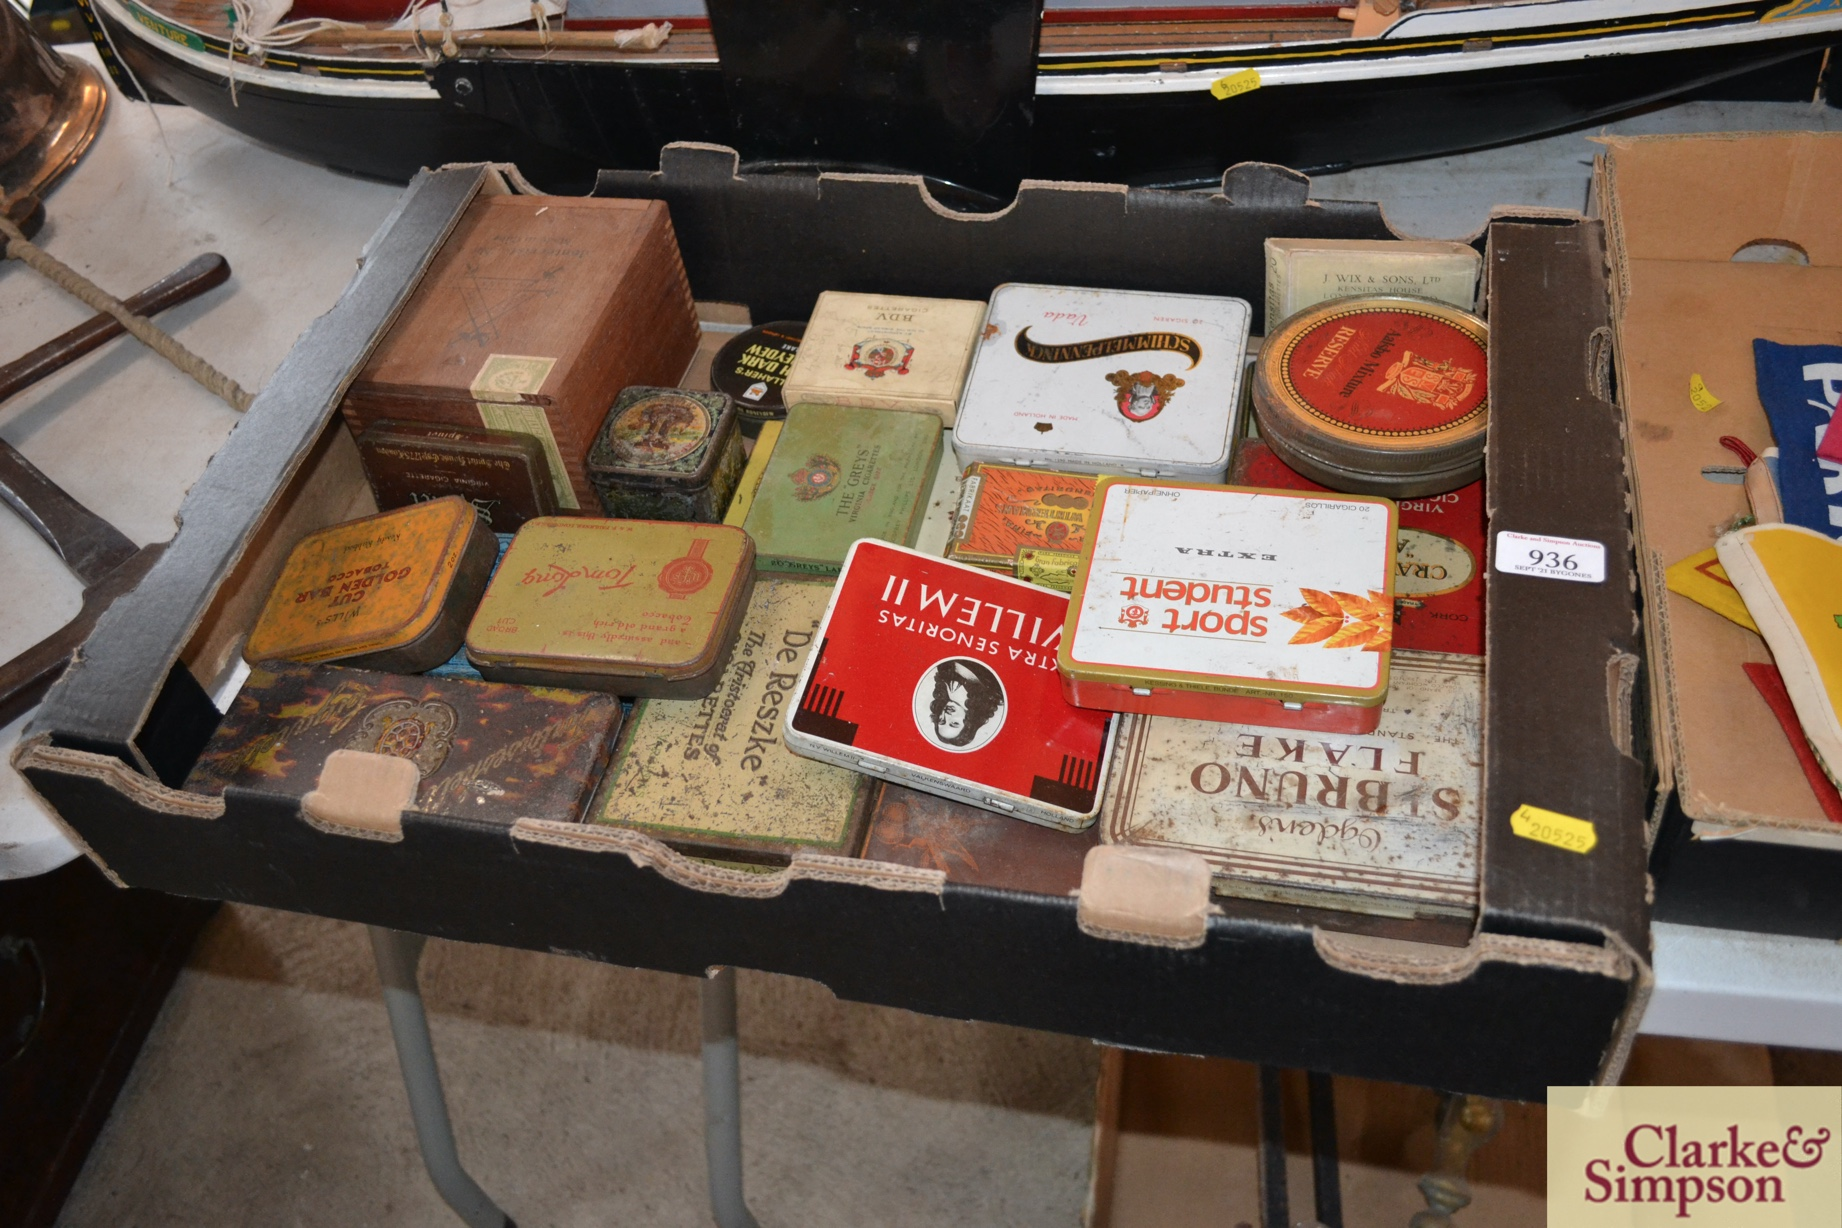 A box of various old cigar, cigarette and tobacco